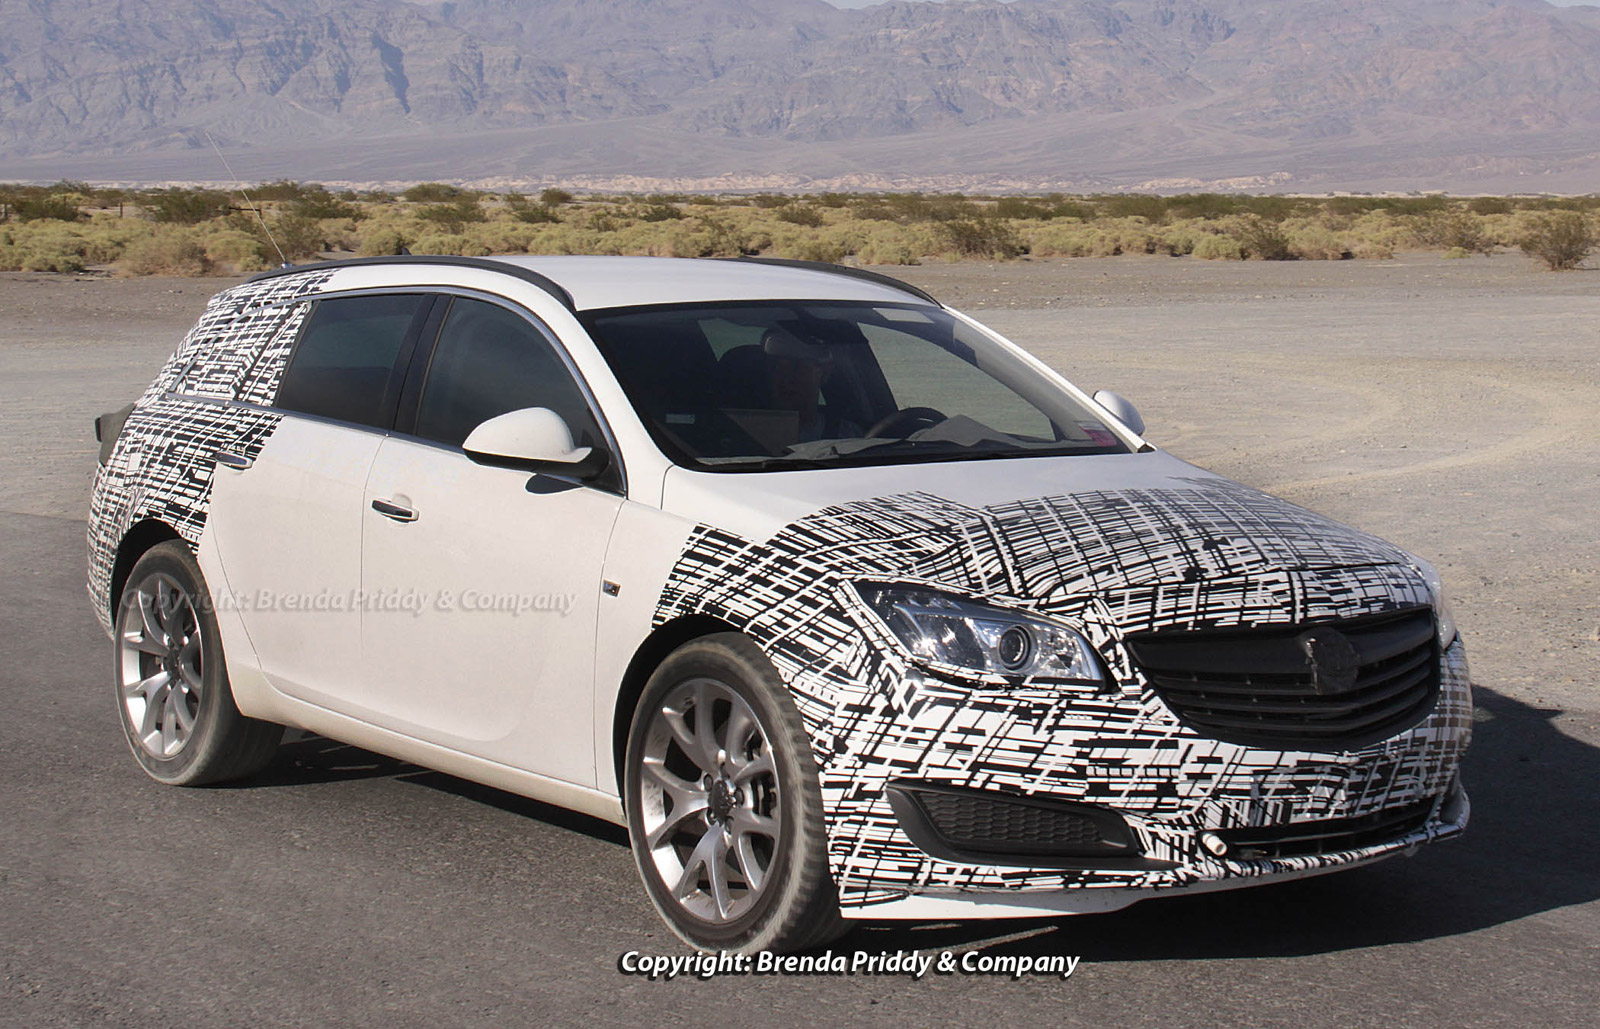 2014 buick regal sport wagon spy shots. Black Bedroom Furniture Sets. Home Design Ideas